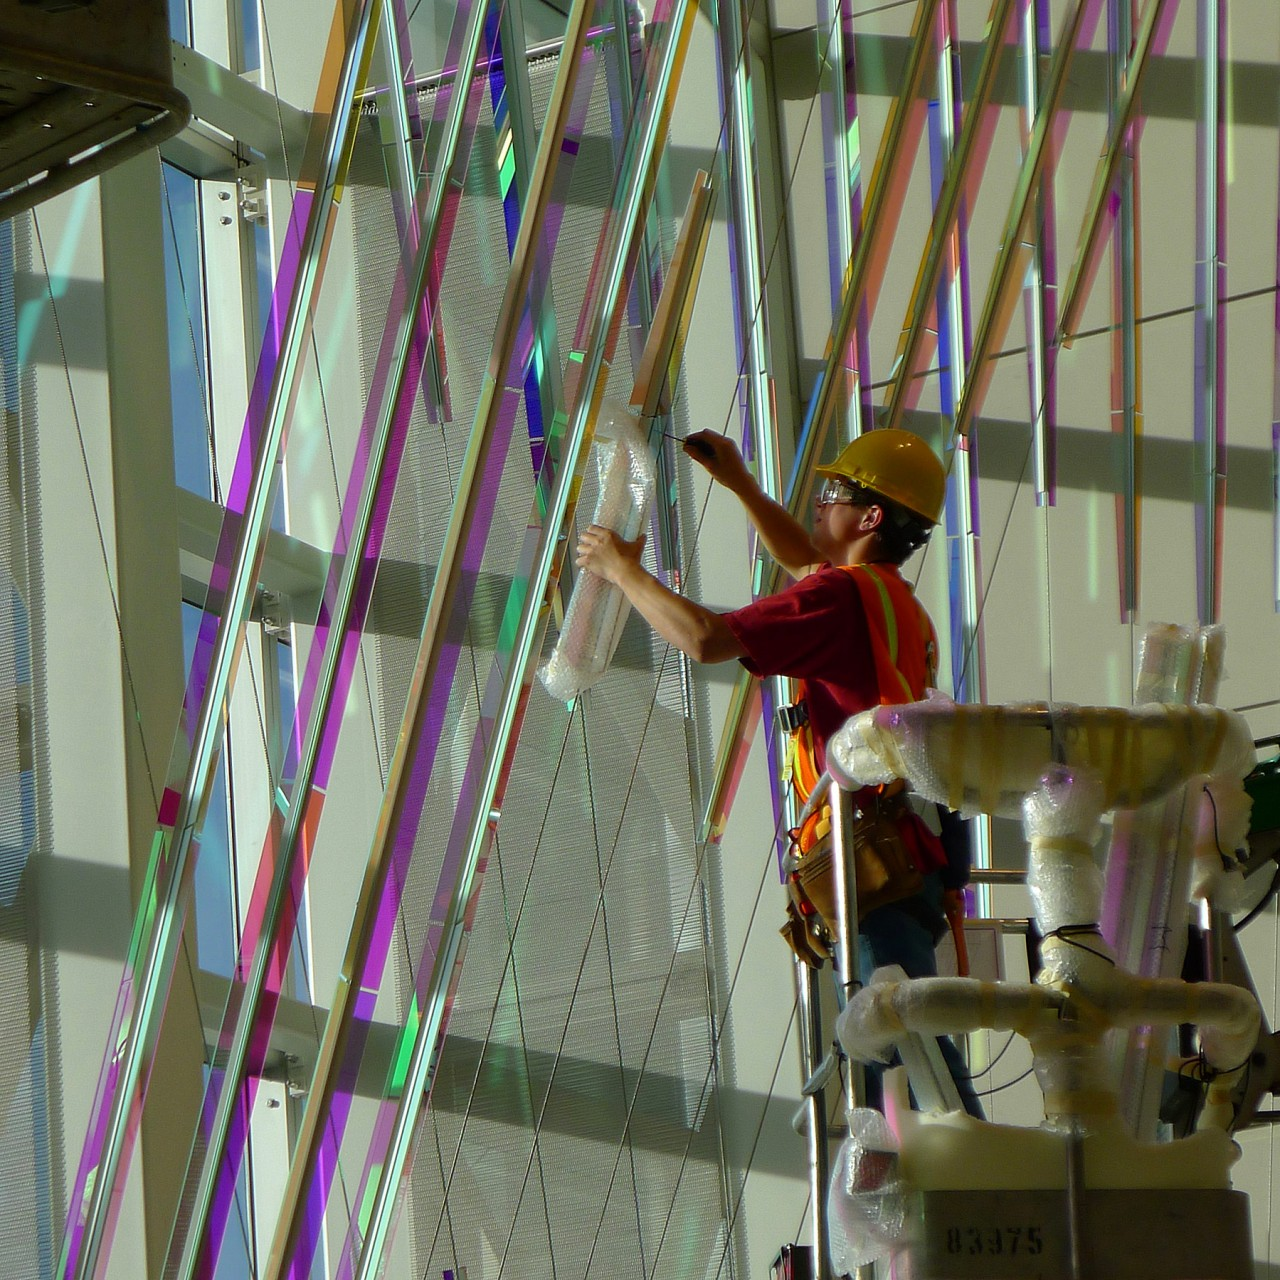 Ed Carpenter's McCarran airport suspended art installation of dichroic glass panels. / image 5